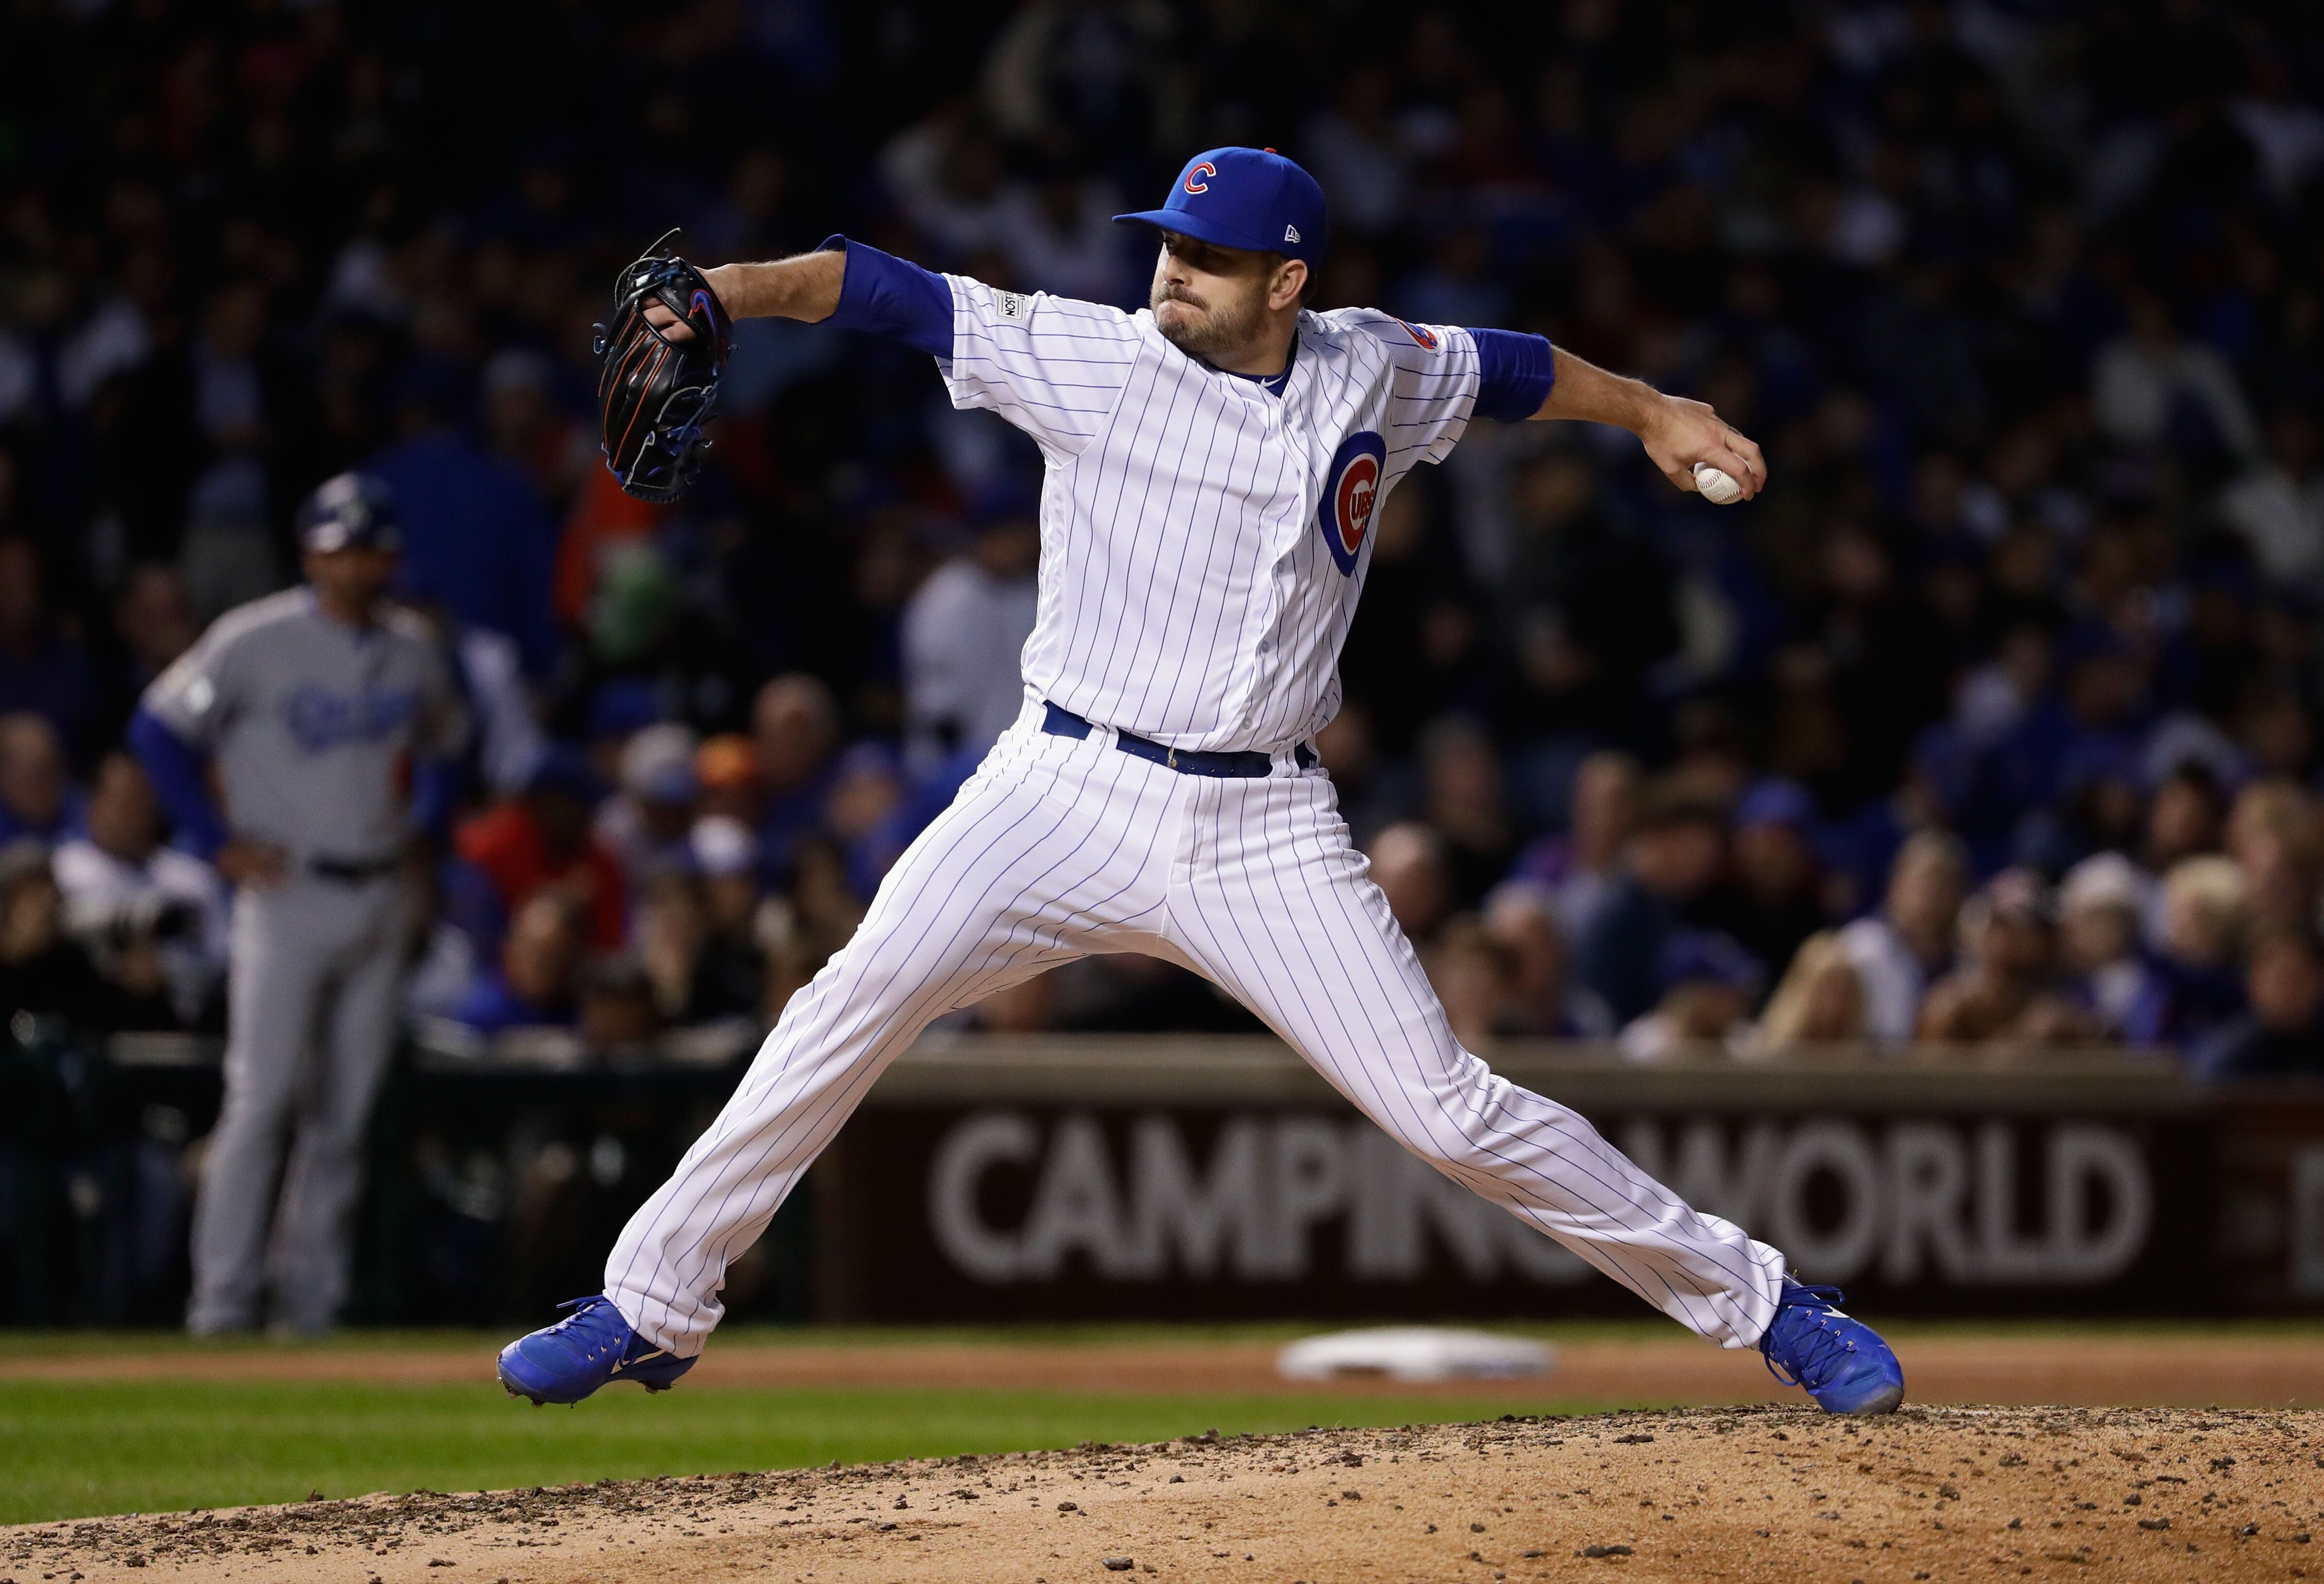 863246136-league-championship-series-los-angeles-dodgers-v-chicago-cubs-game-five.jpg